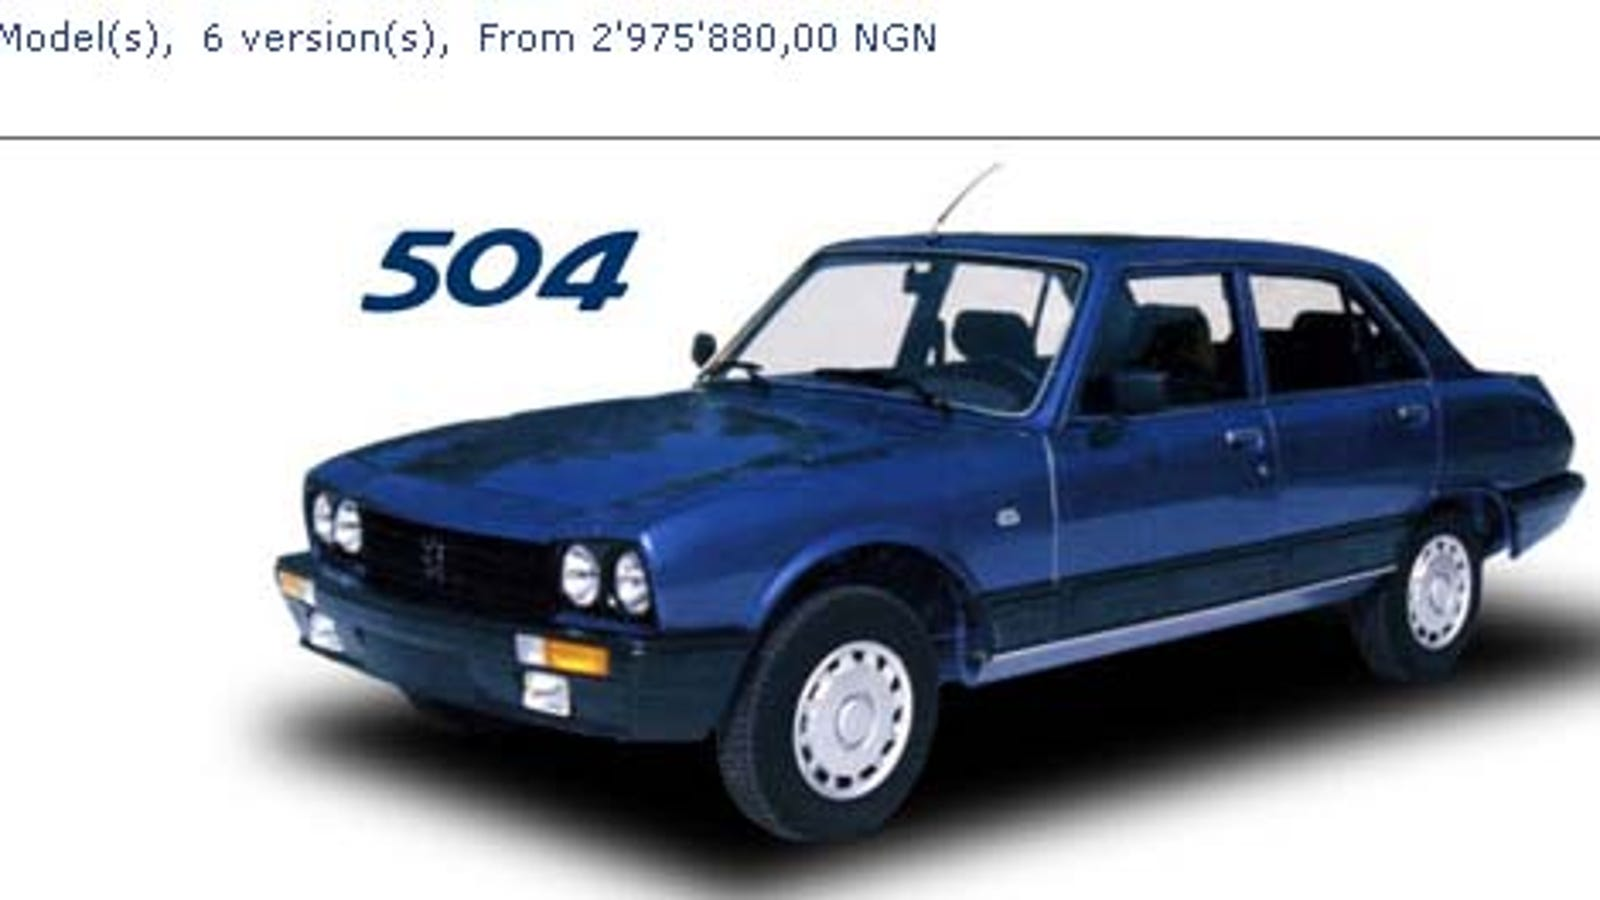 want a brand new peugeot 504? head to nigeria!